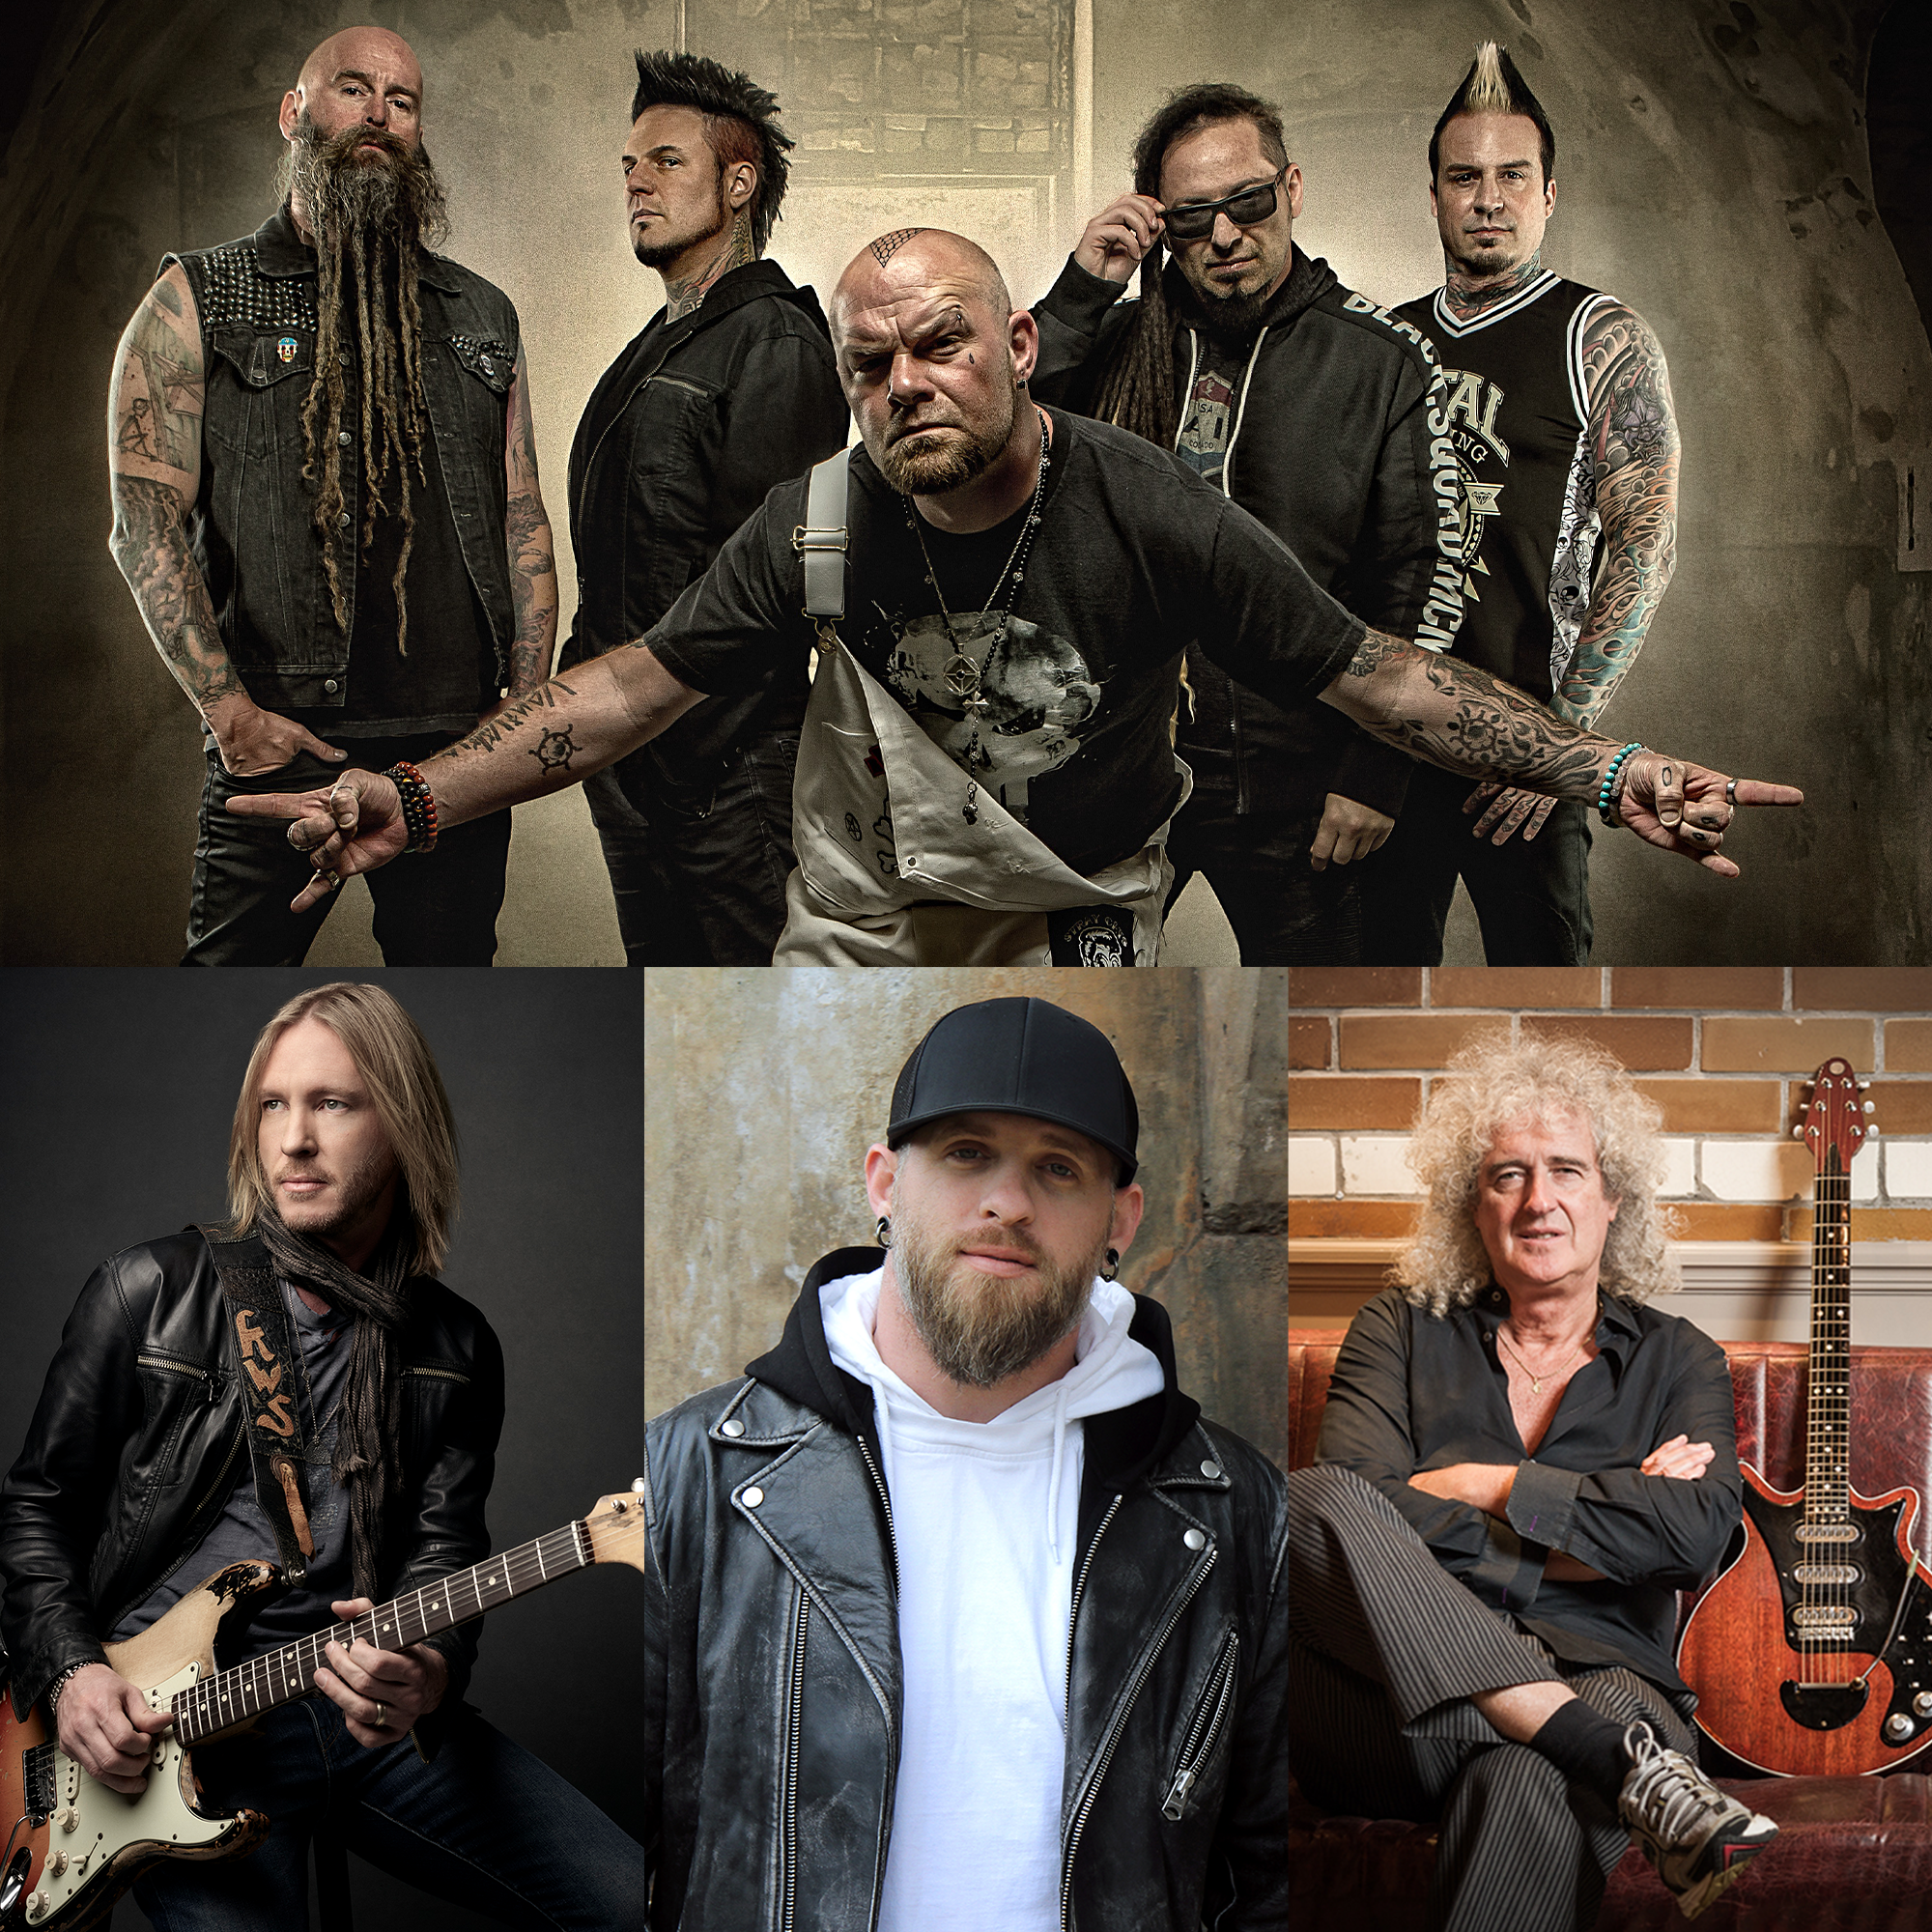 five-finger-death-punch-brian-may-brantley-gilbert-kenny-wayne-shepherd-praesentieren-gemeinsames-video